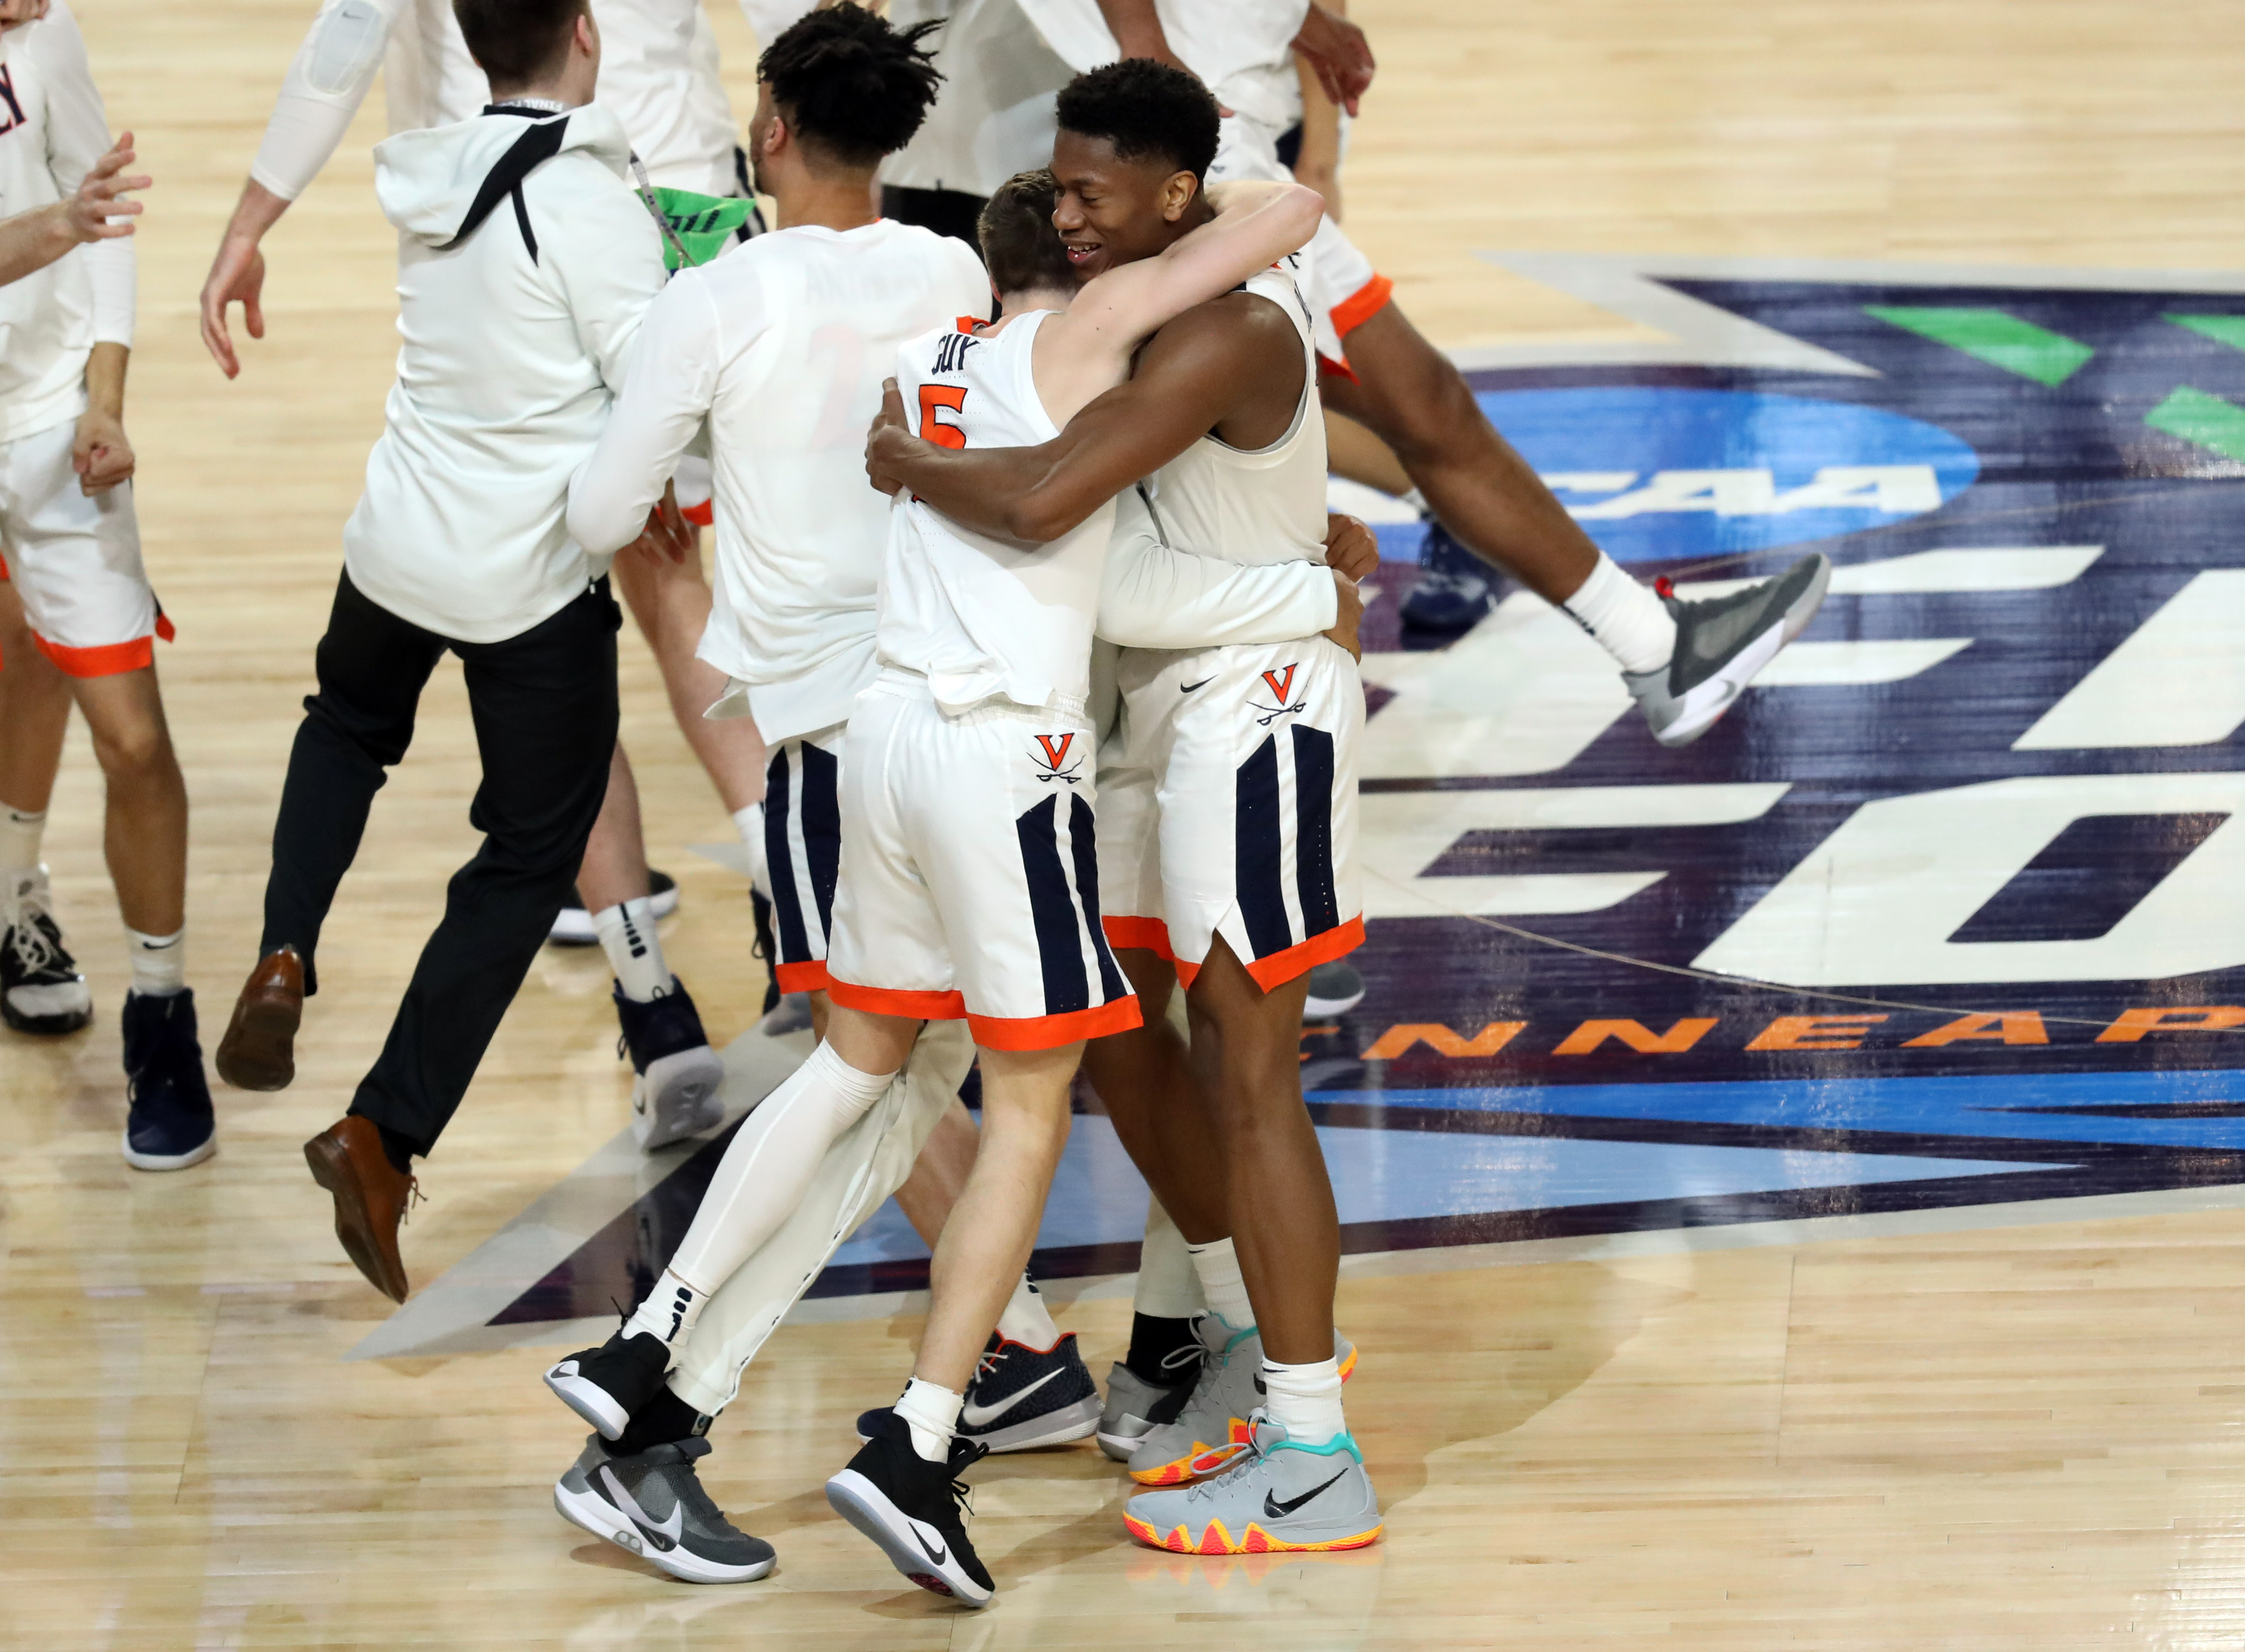 Paladins Best Champions 2020 2020 NCAA basketball national championship odds: Full list with